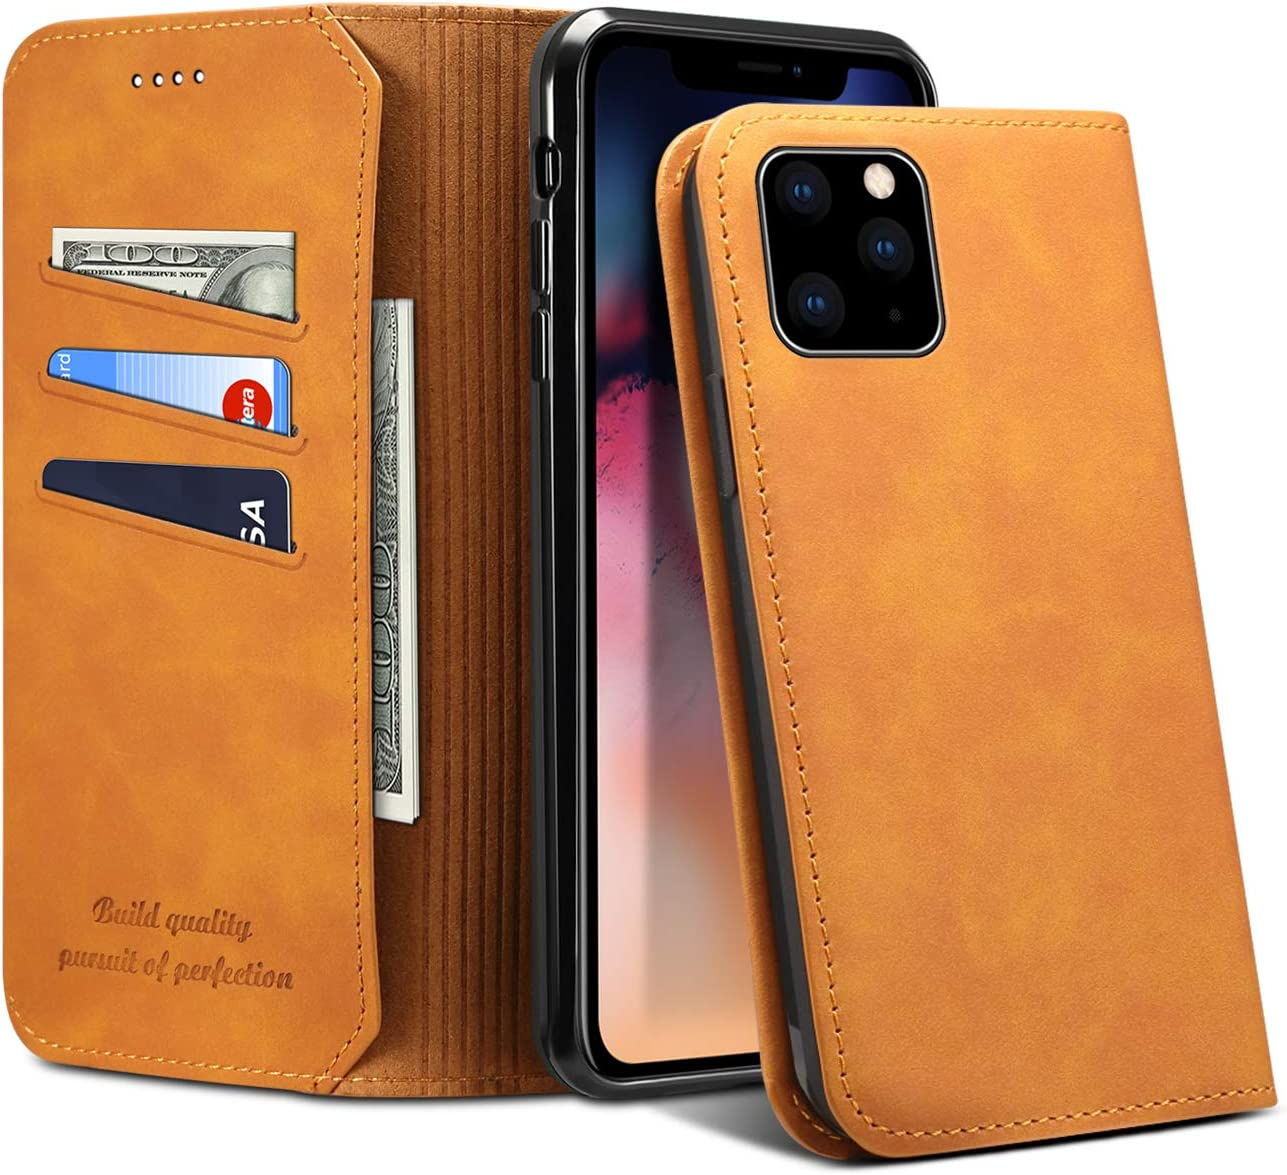 Credit Card Cover Case for Apple iPhone 11 Pro,Soft Leather Protective Fashion Folio Magnetic Closure Light Wallet